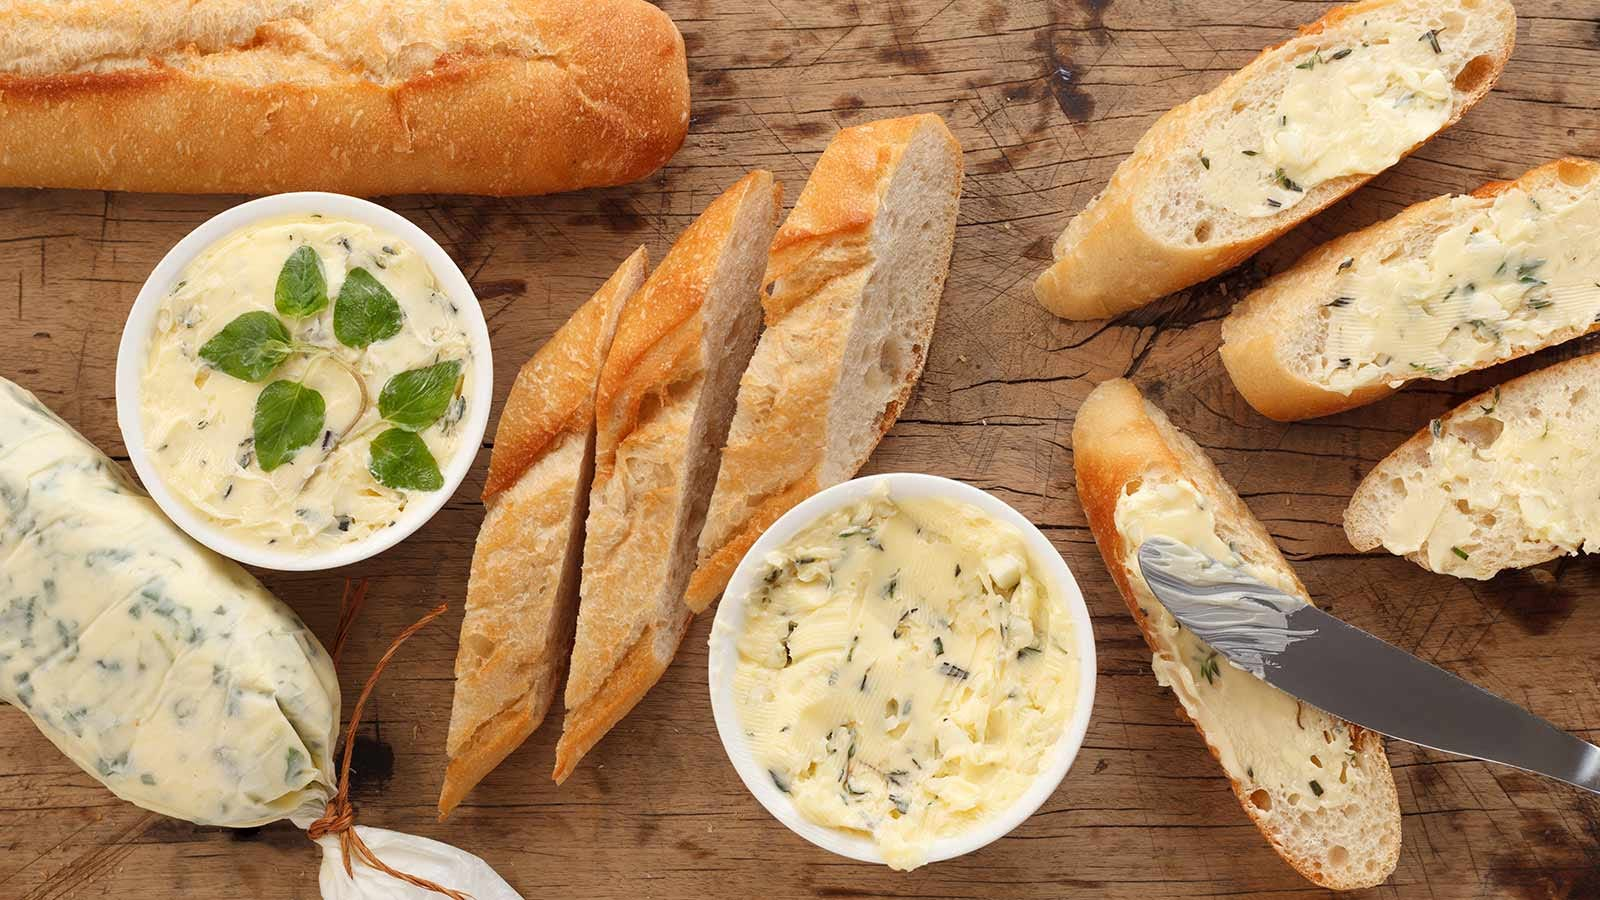 fresh bread with delicious compound butters in dishes